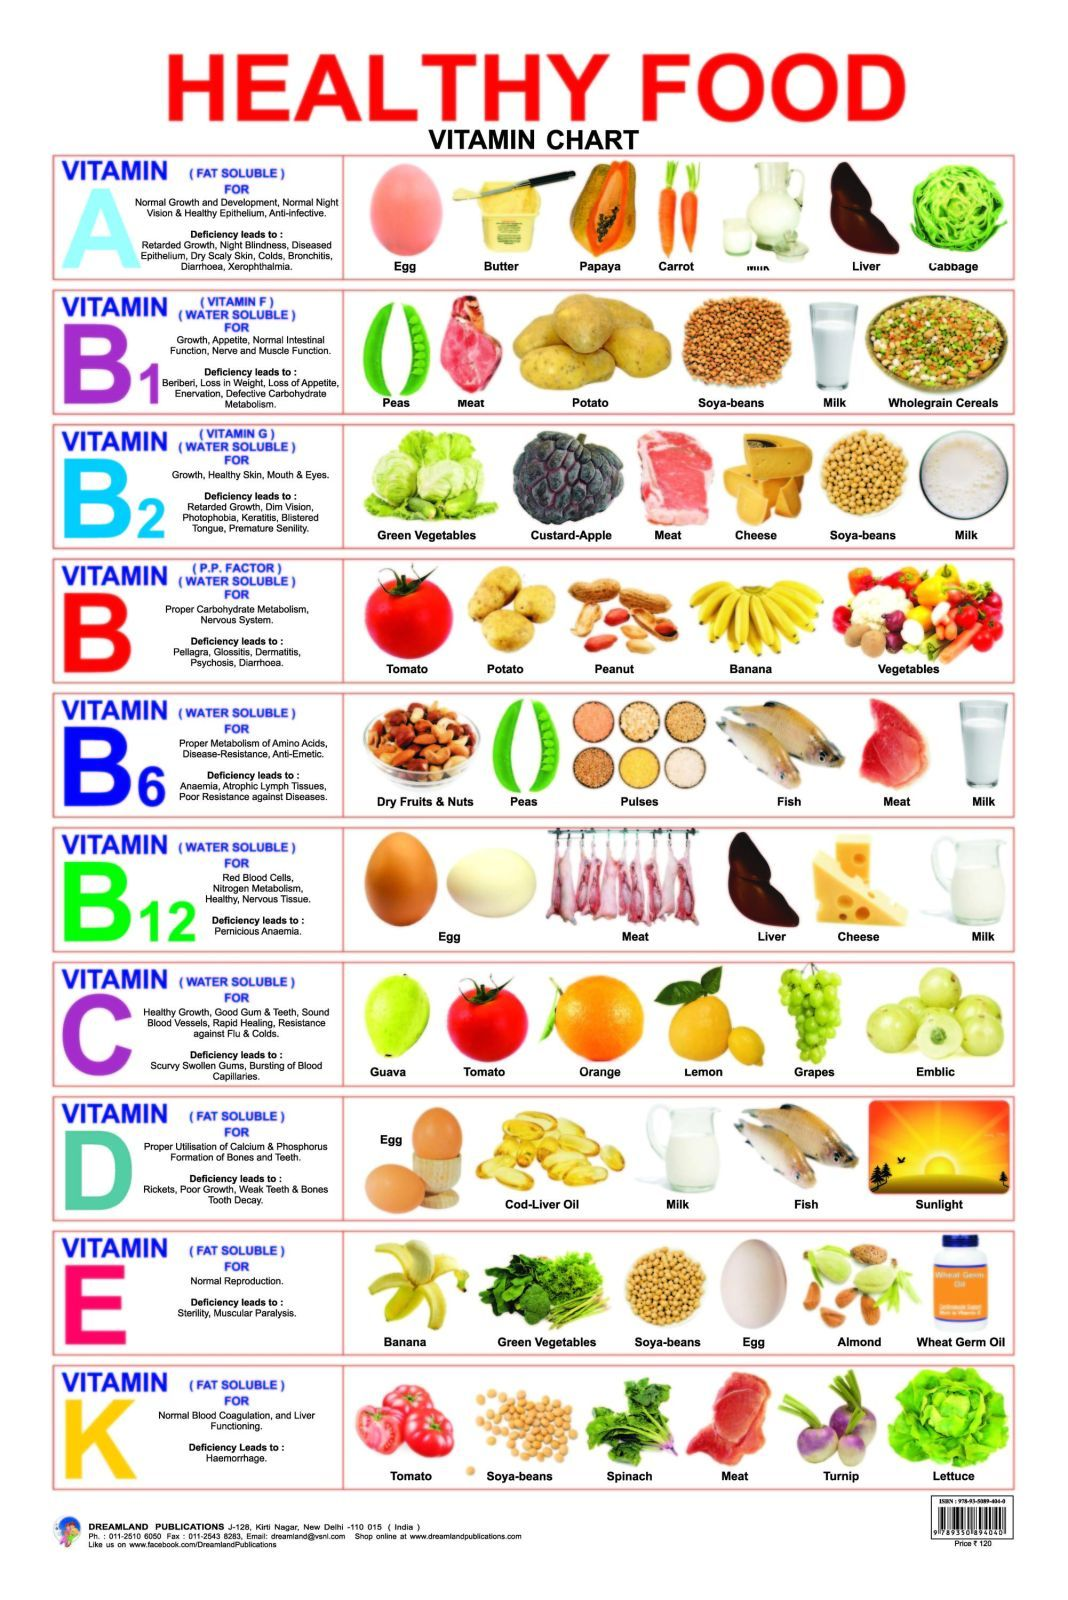 Healthy food vitamin chart buy by dreamland publications at low price in india flipkart also best thalas images school posters charts for kids rh pinterest